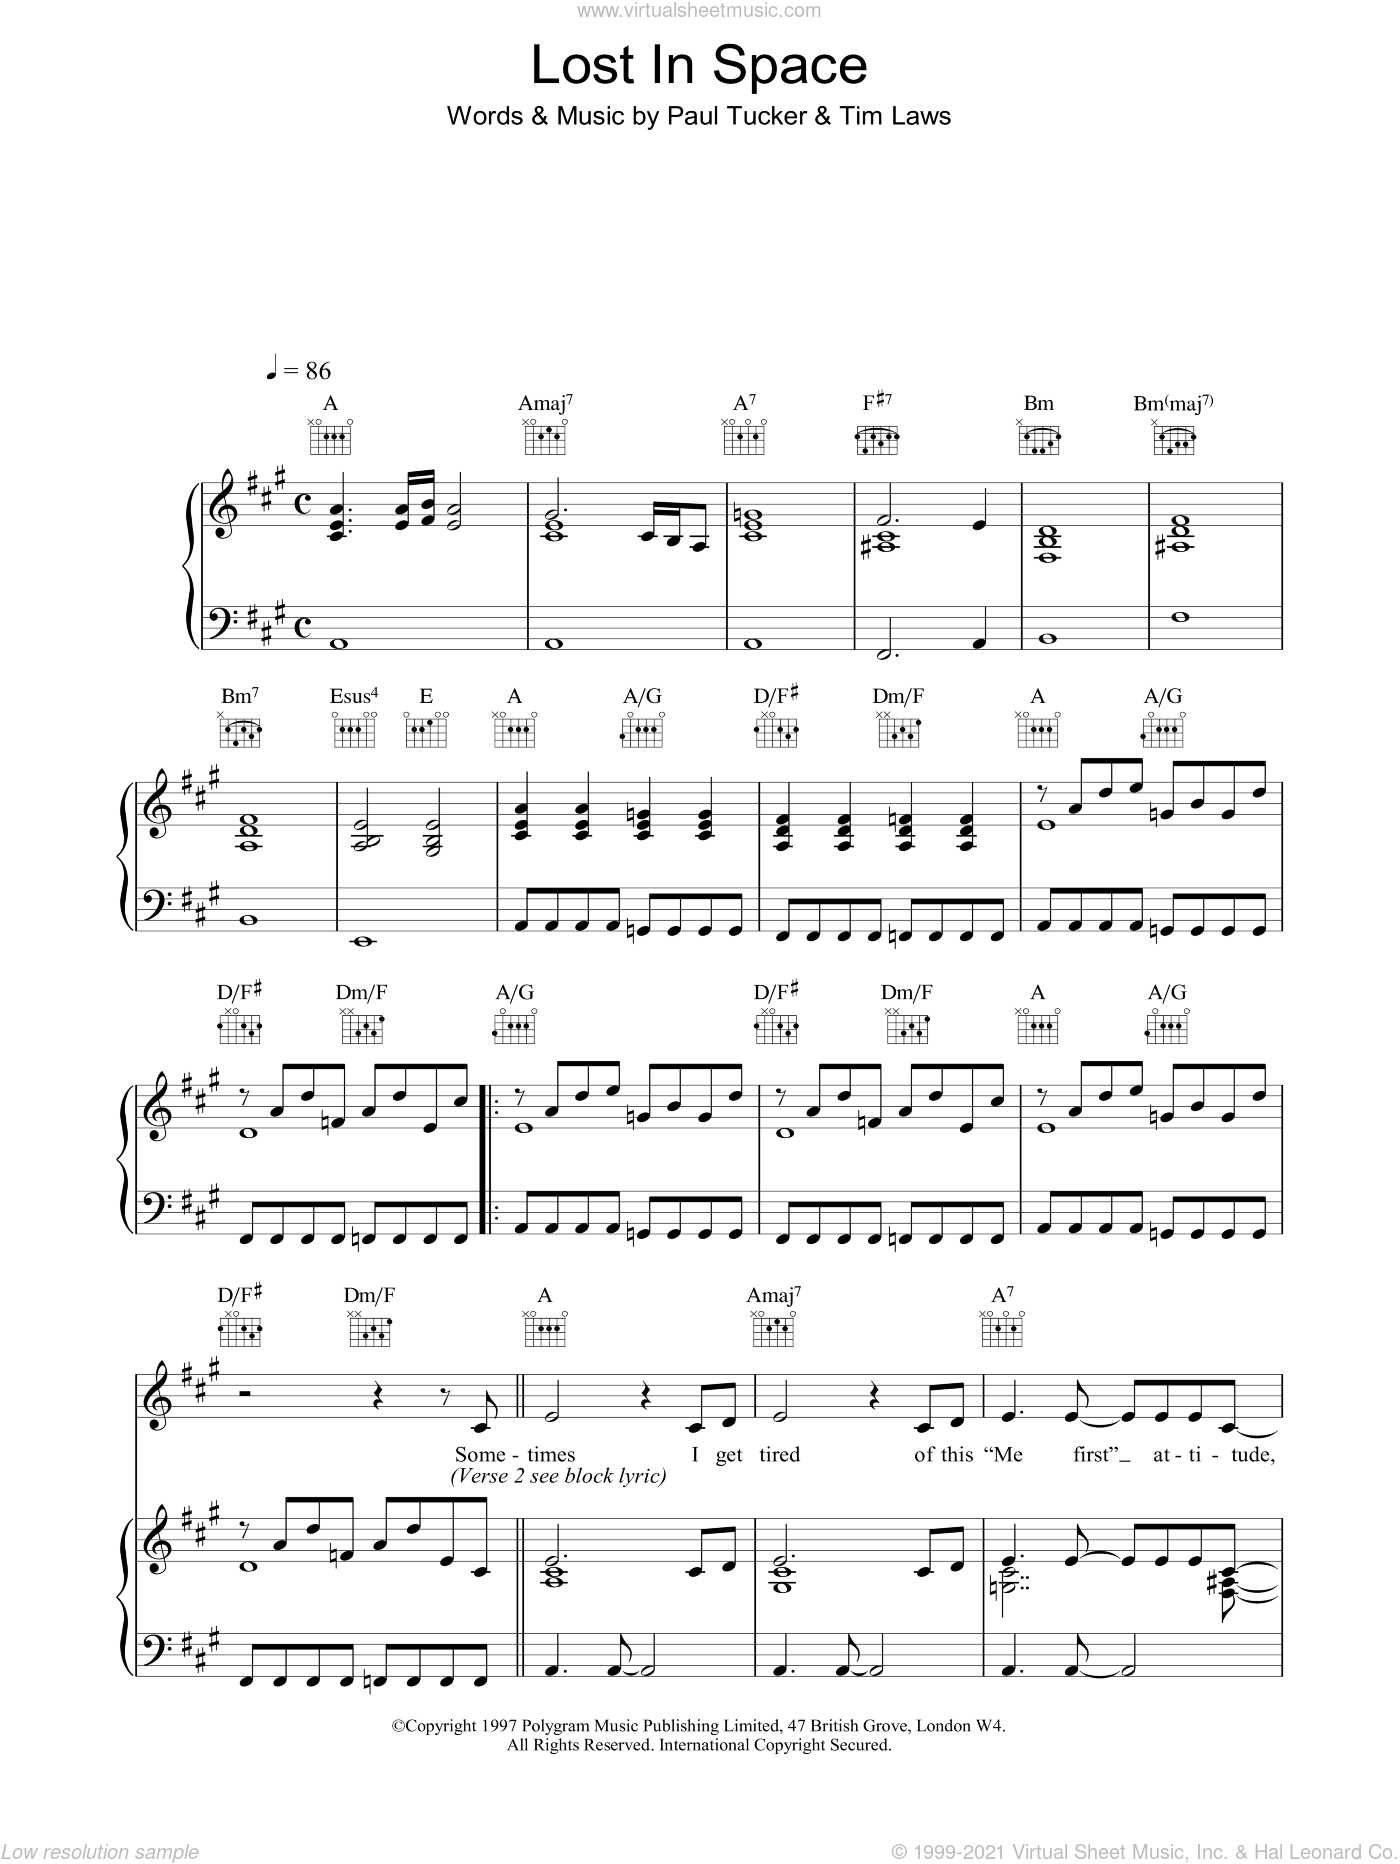 Lost In Space sheet music for voice, piano or guitar by Tim Laws